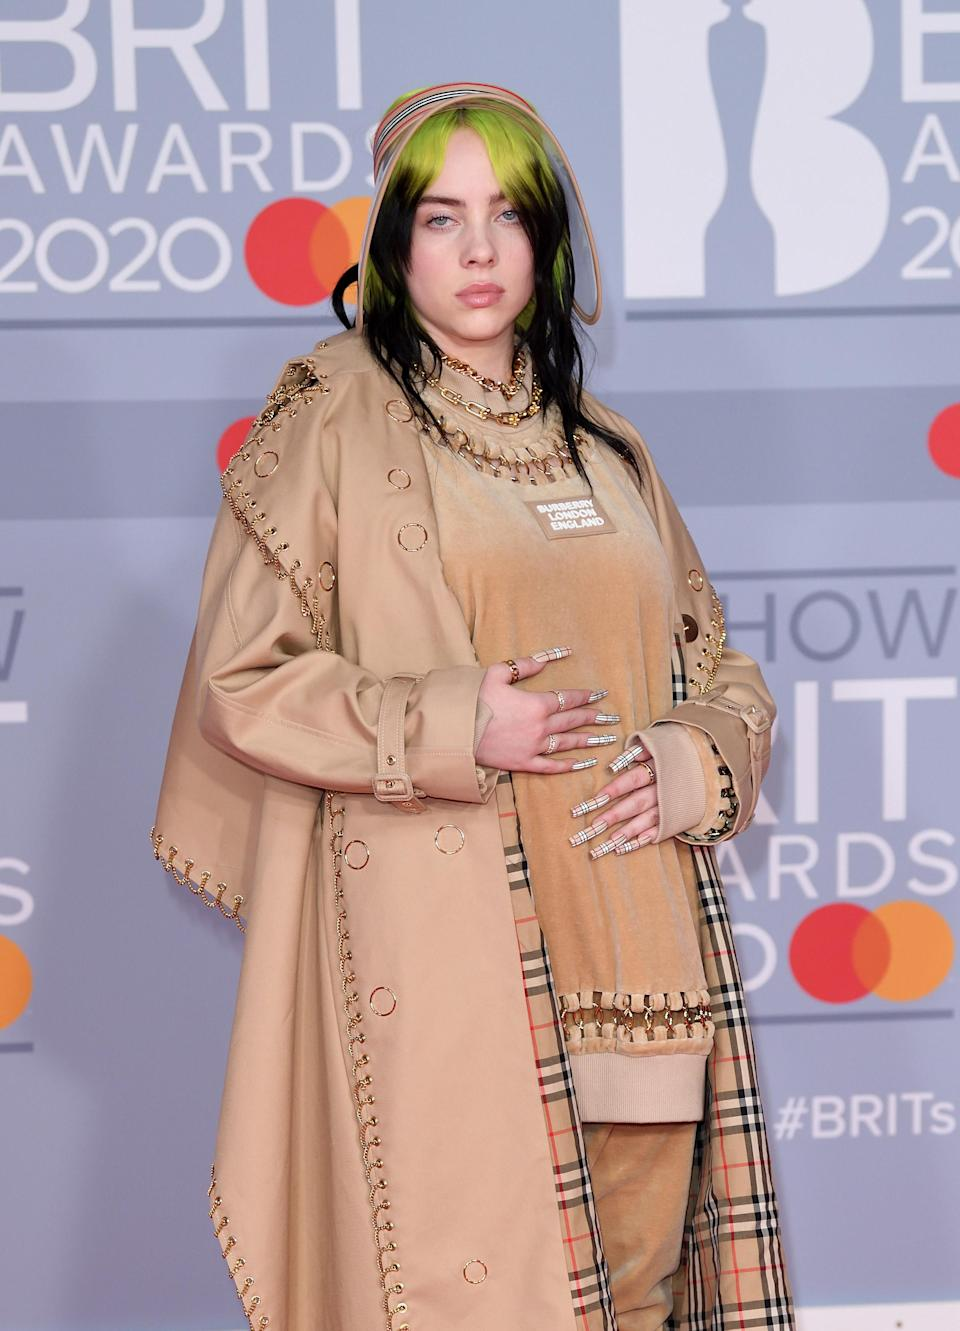 Billie on the red carpet in a loose trench coat